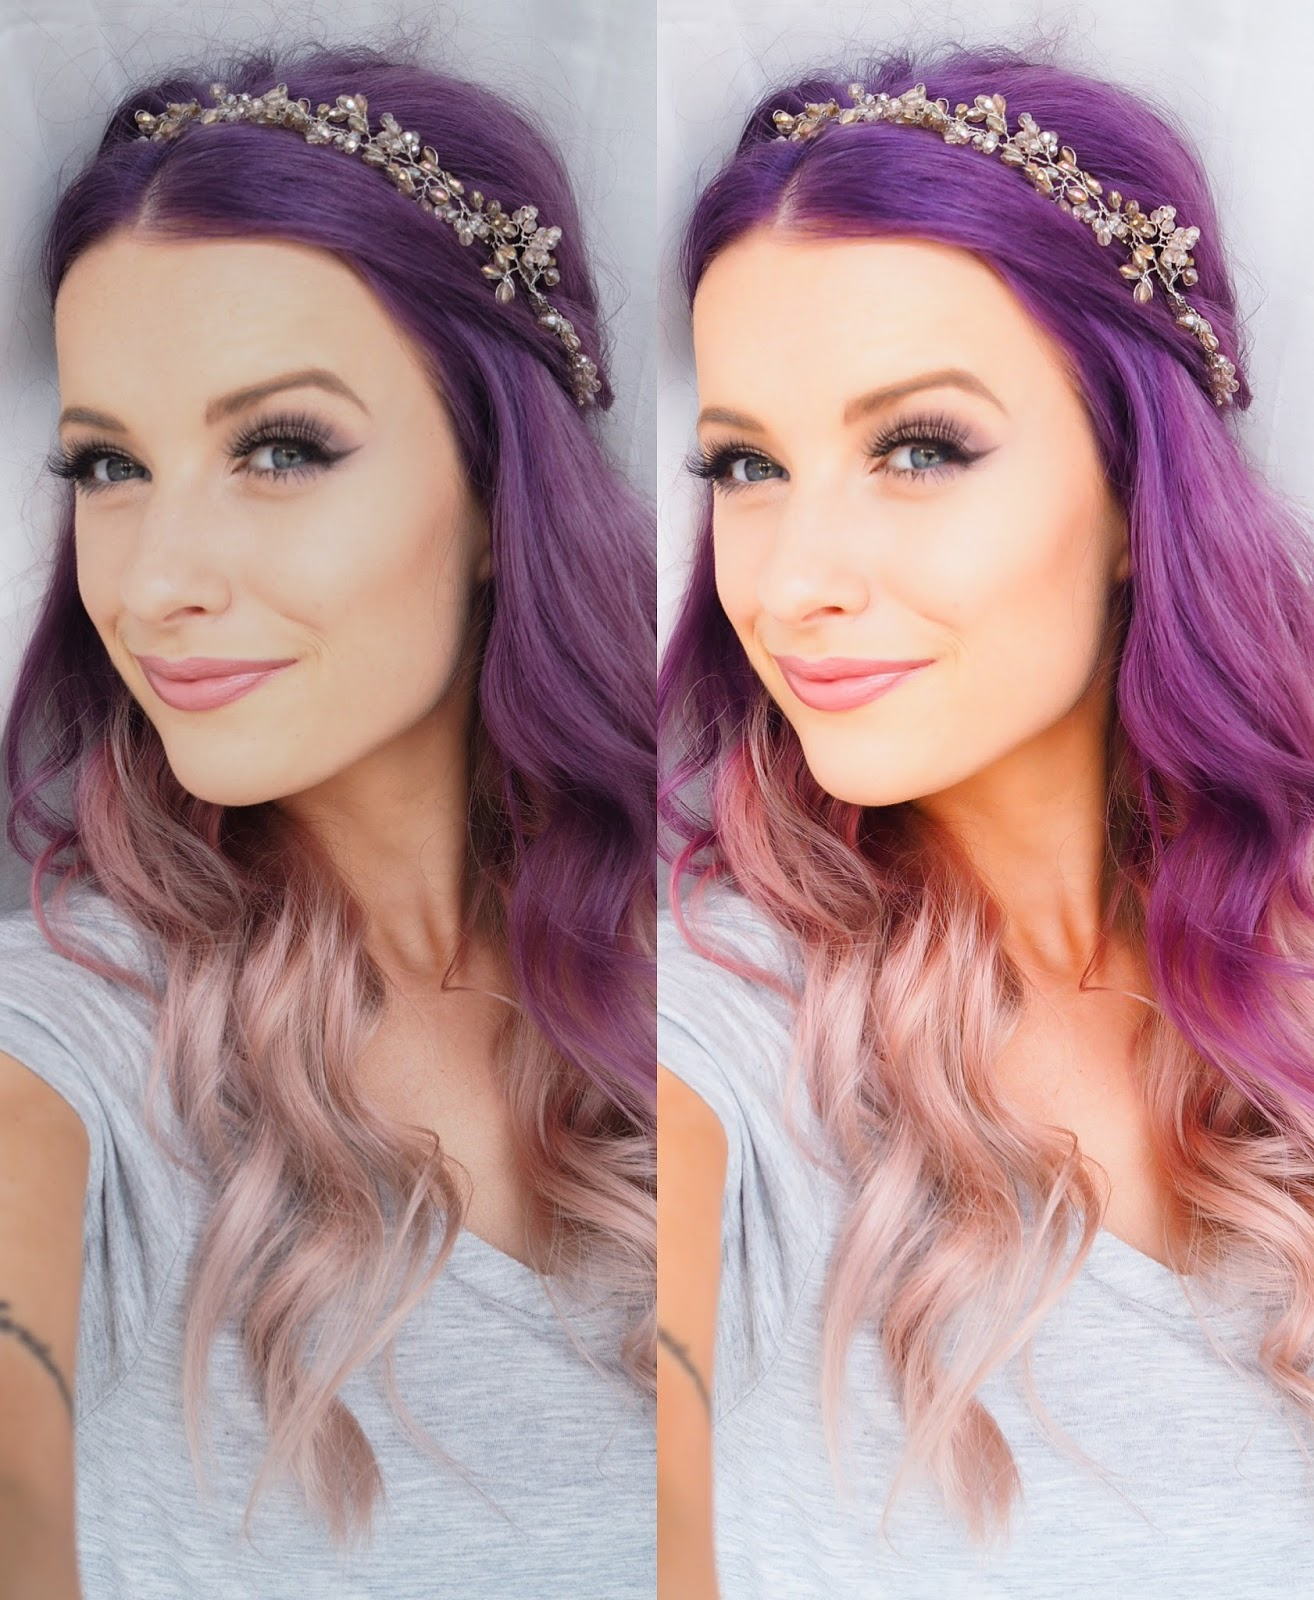 cf9ccfc91d4 How to Make Your Instagram Look Beautiful - Inthefrow